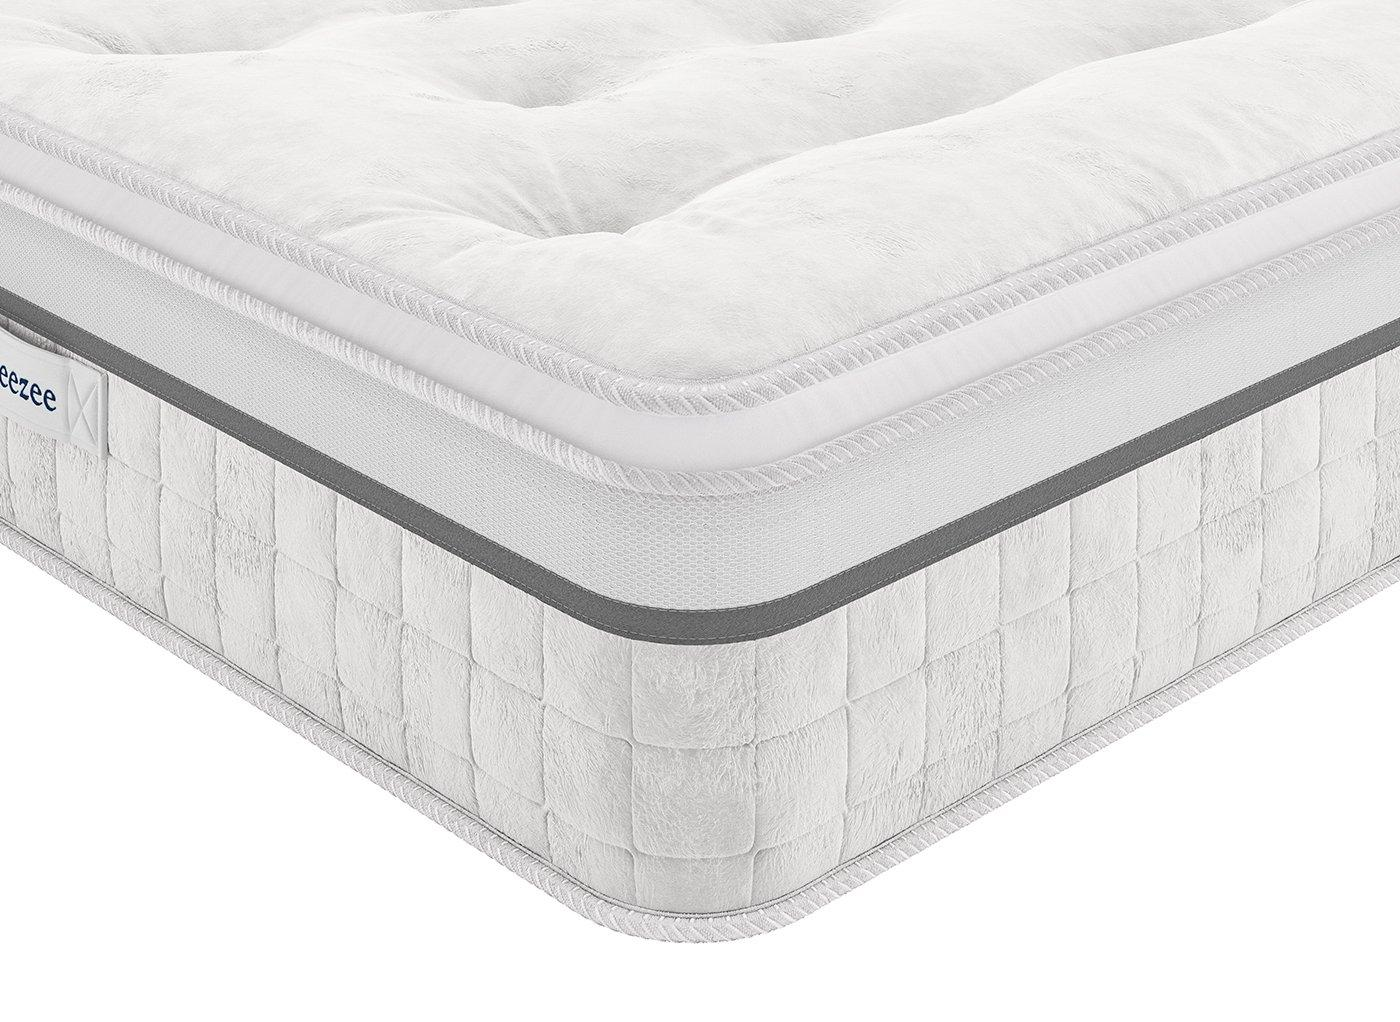 Sleepeezee Chelmsford D Mattress 4'6 Double